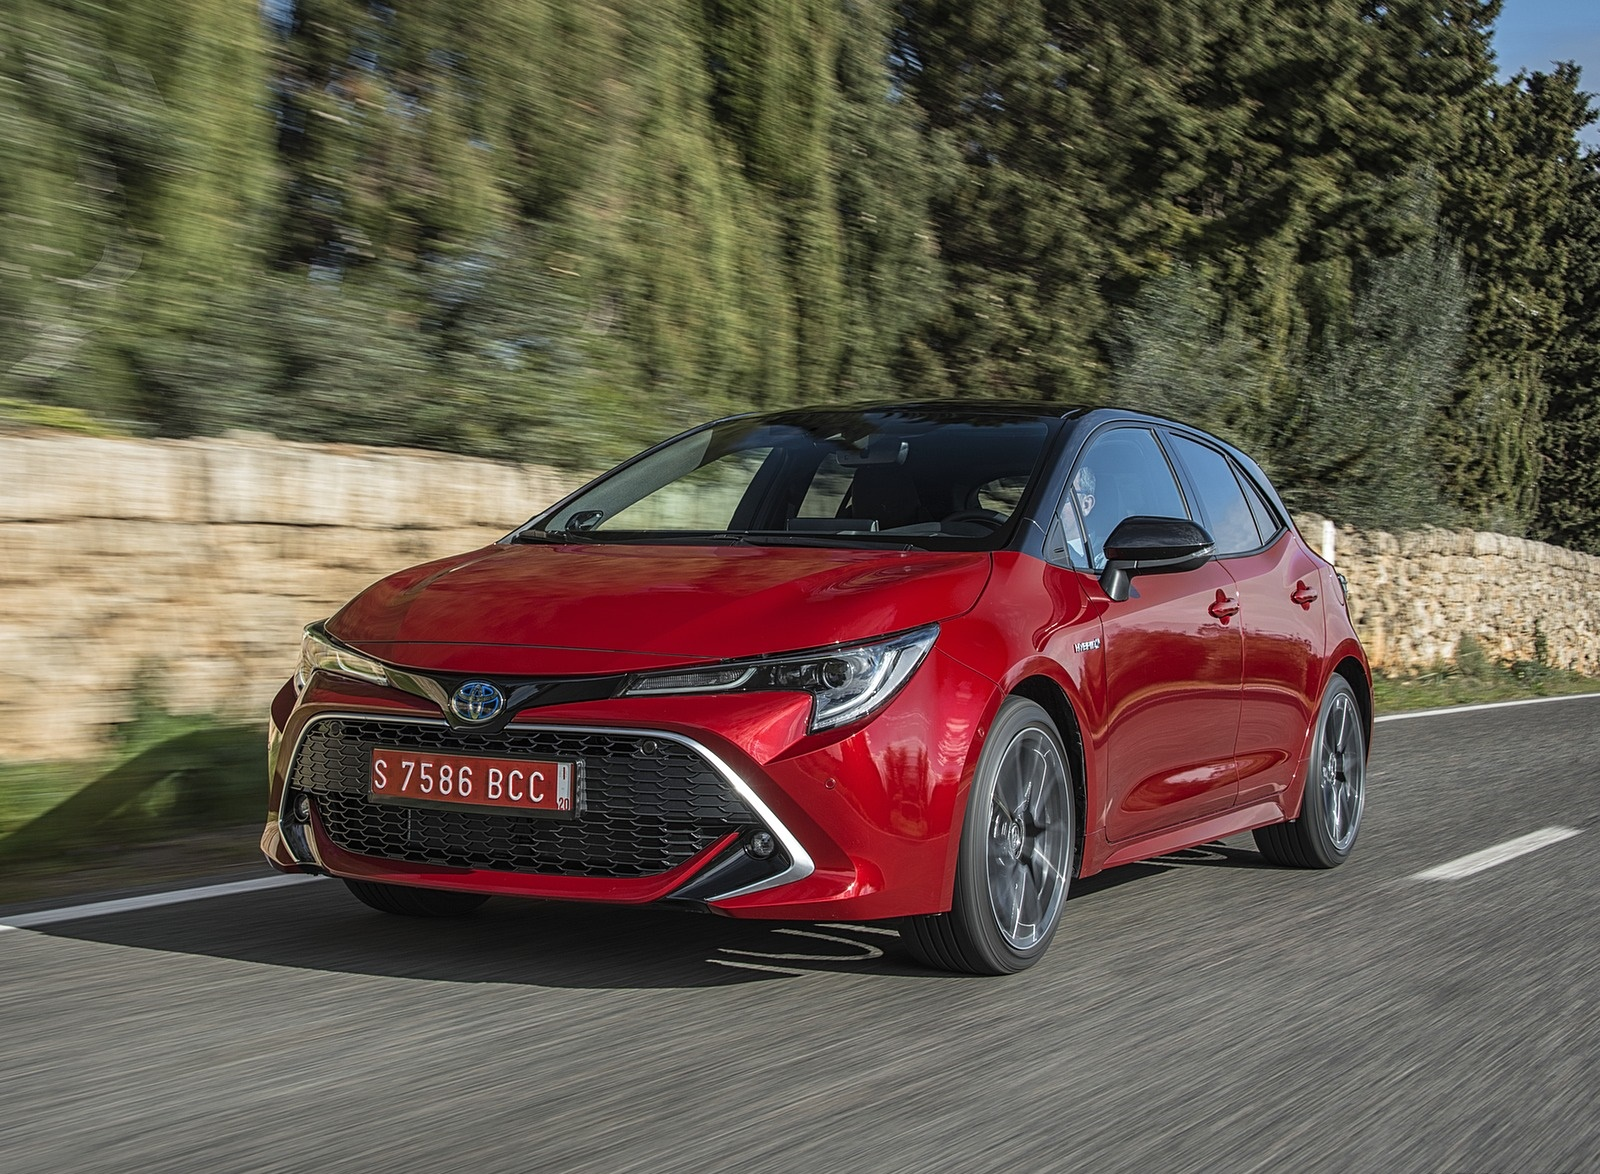 2019 Toyota Corolla Hatchback Hybrid 2.0L Red bitone (EU-Spec) Front Three-Quarter Wallpapers (7)